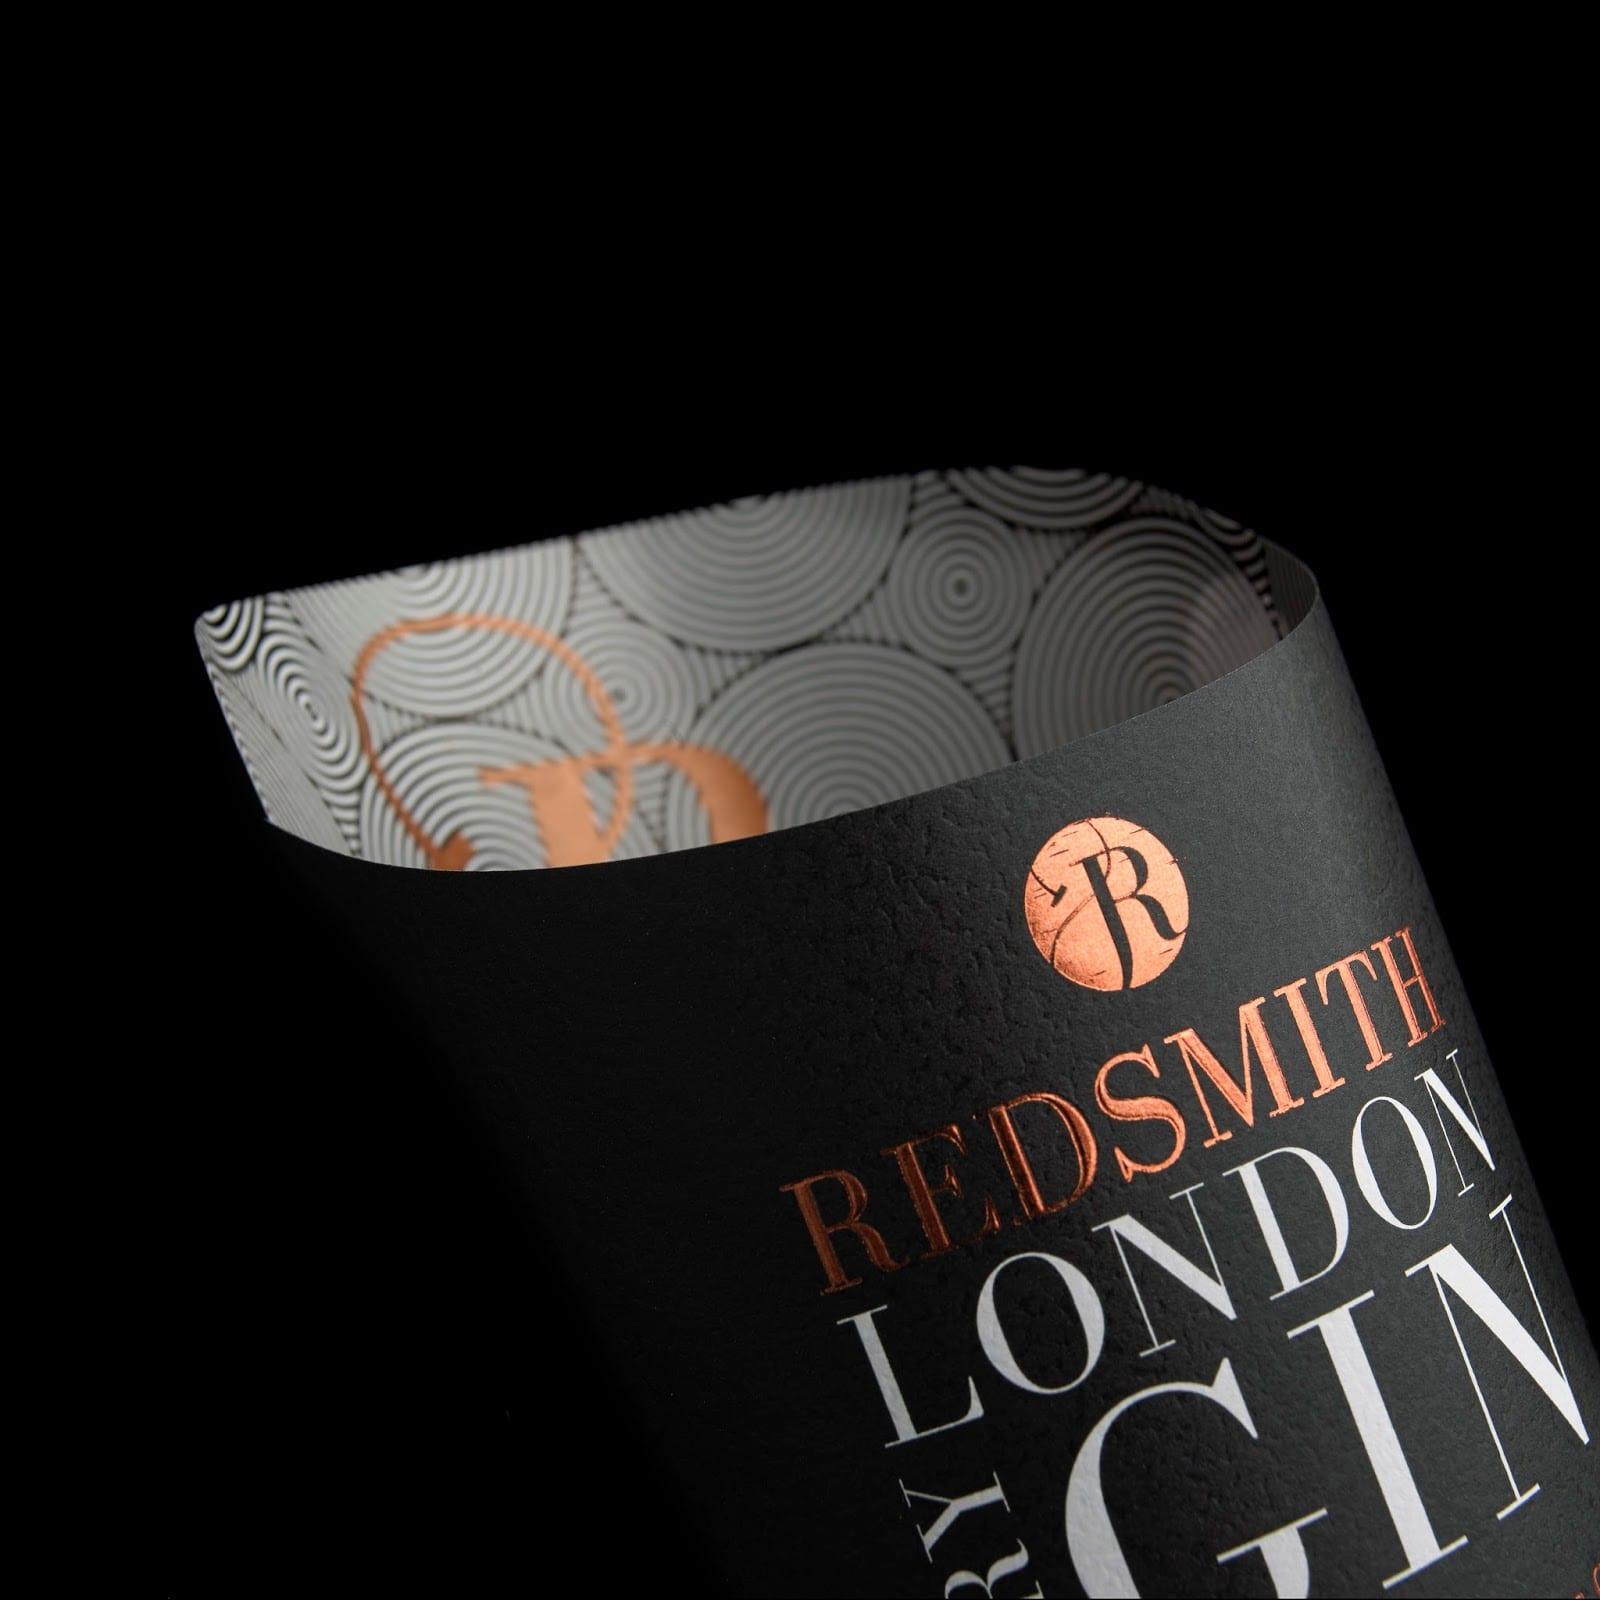 Royston Labels Redsmith 5 - Redsmith London Dry Gin